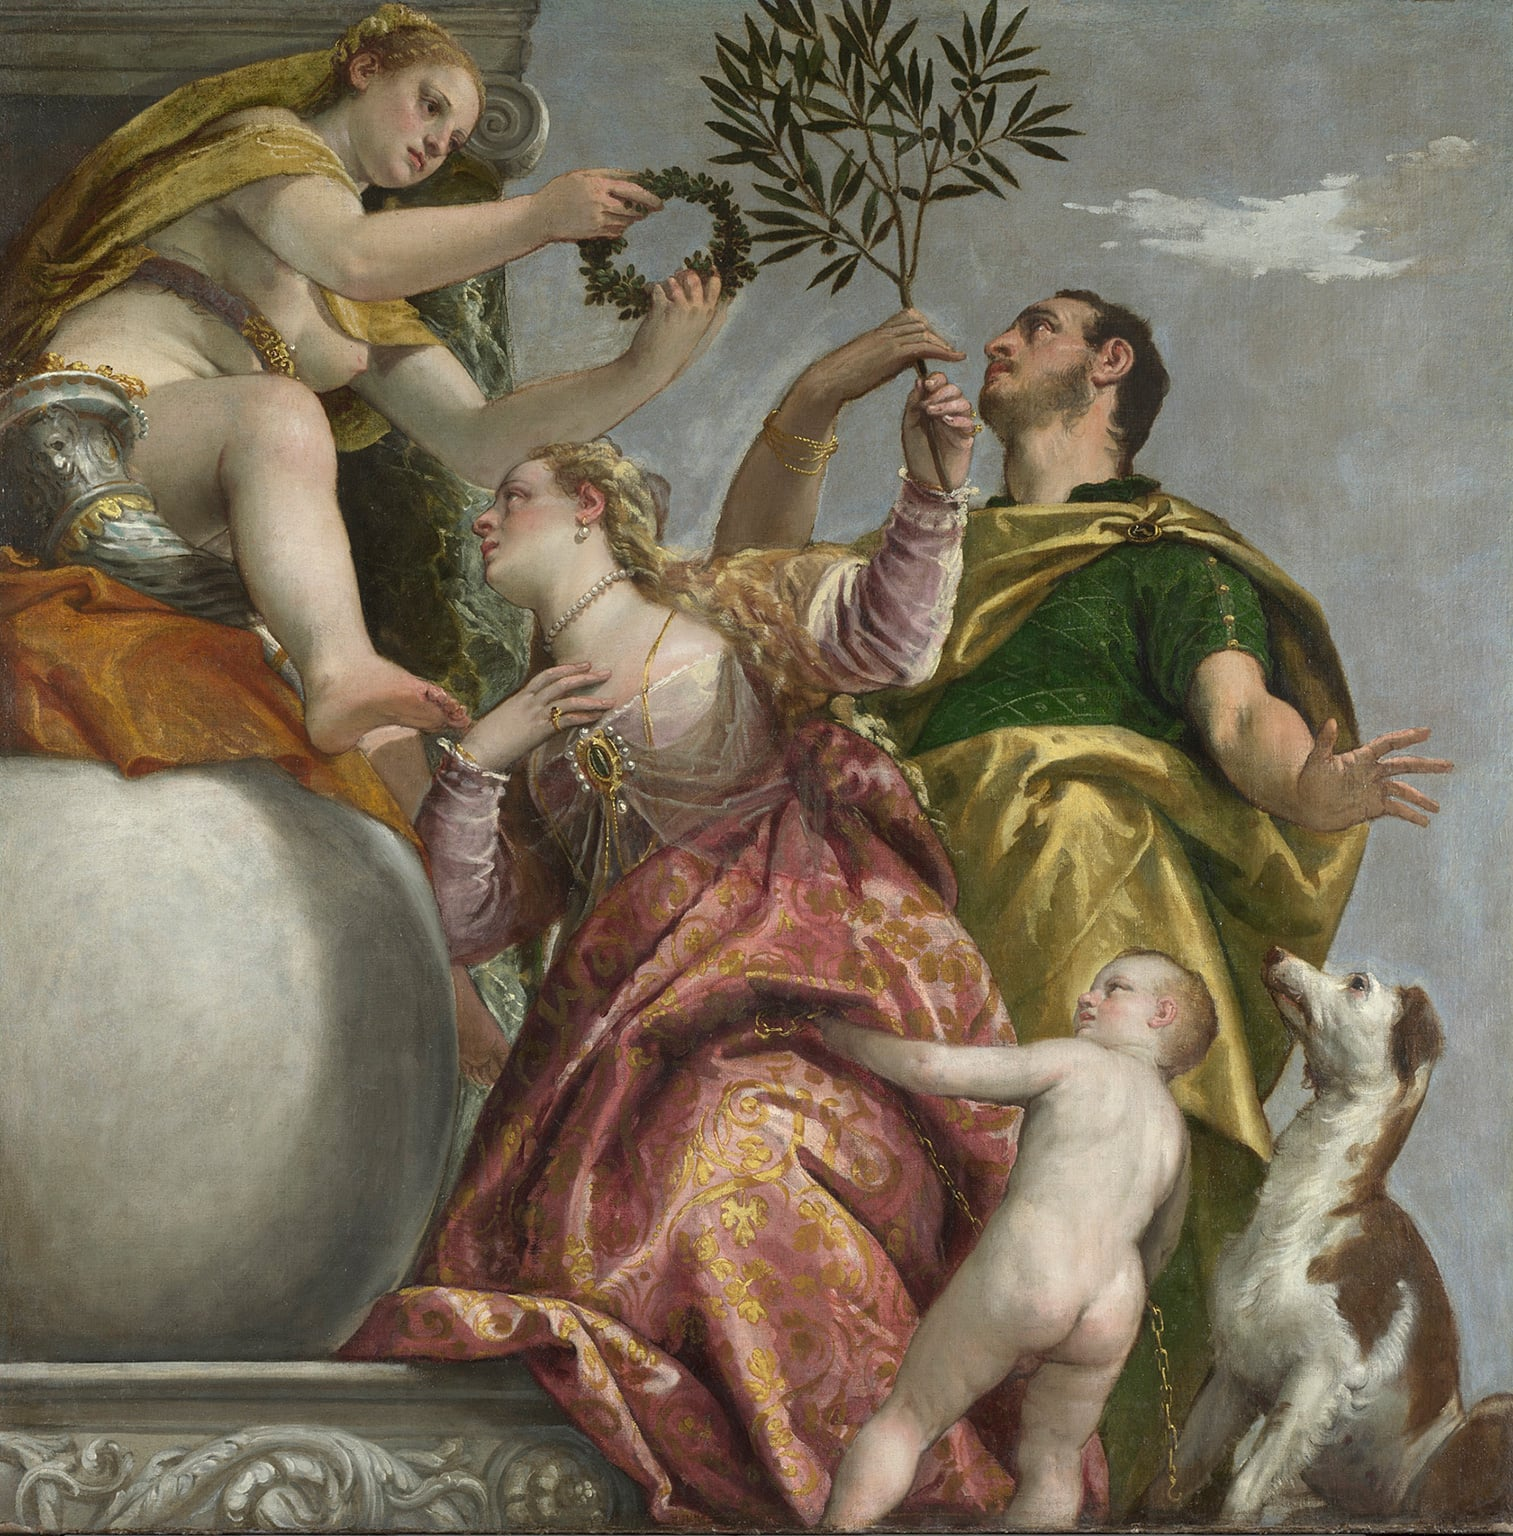 1. Veronese: Magnificence in Renaissance Venice - 19 March to 15 June 2014, National Gallery, London